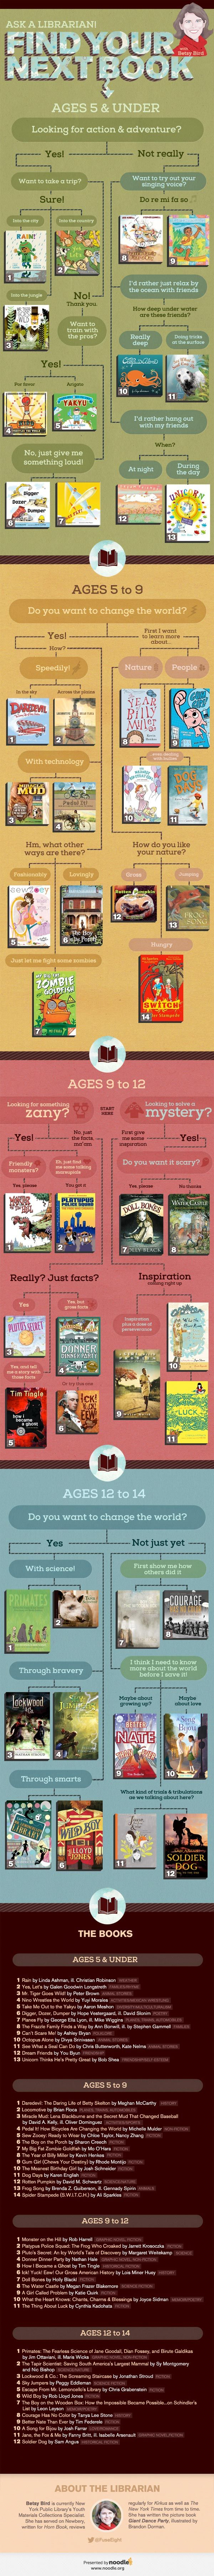 Cute infographic on choosing from some of the top children's books of 2013Libraries Ideas, Book Lists, Reading, Book For Kids, Child Infographic, Public Libraries, Children Books, Children Librarians, Books For Kids